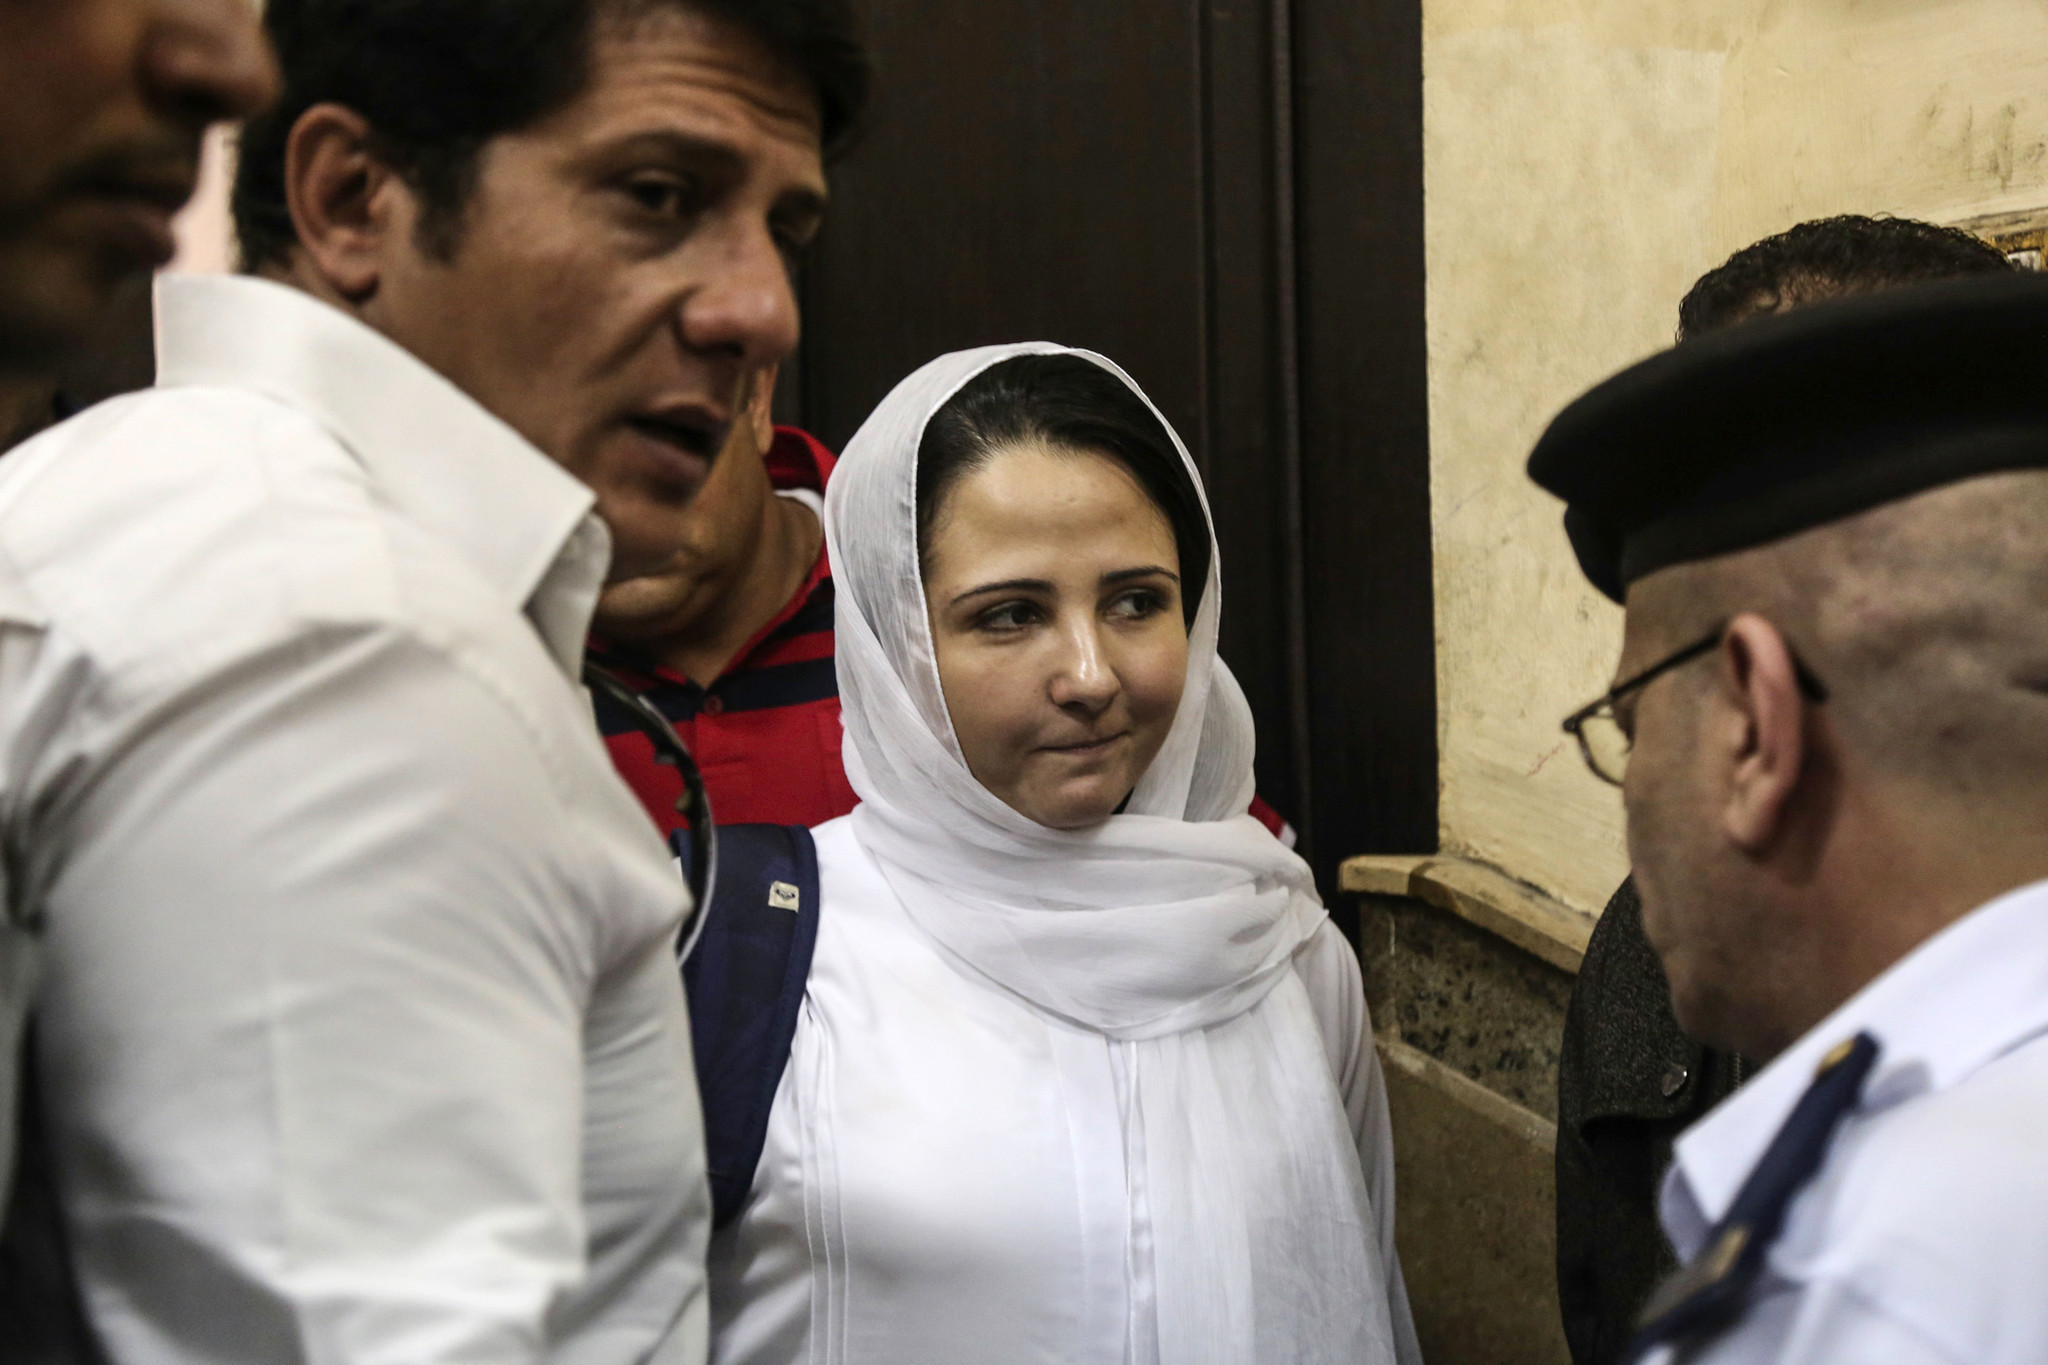 Woman imprisoned in Egypt for 3 years lands in U.S. after Trump intervention